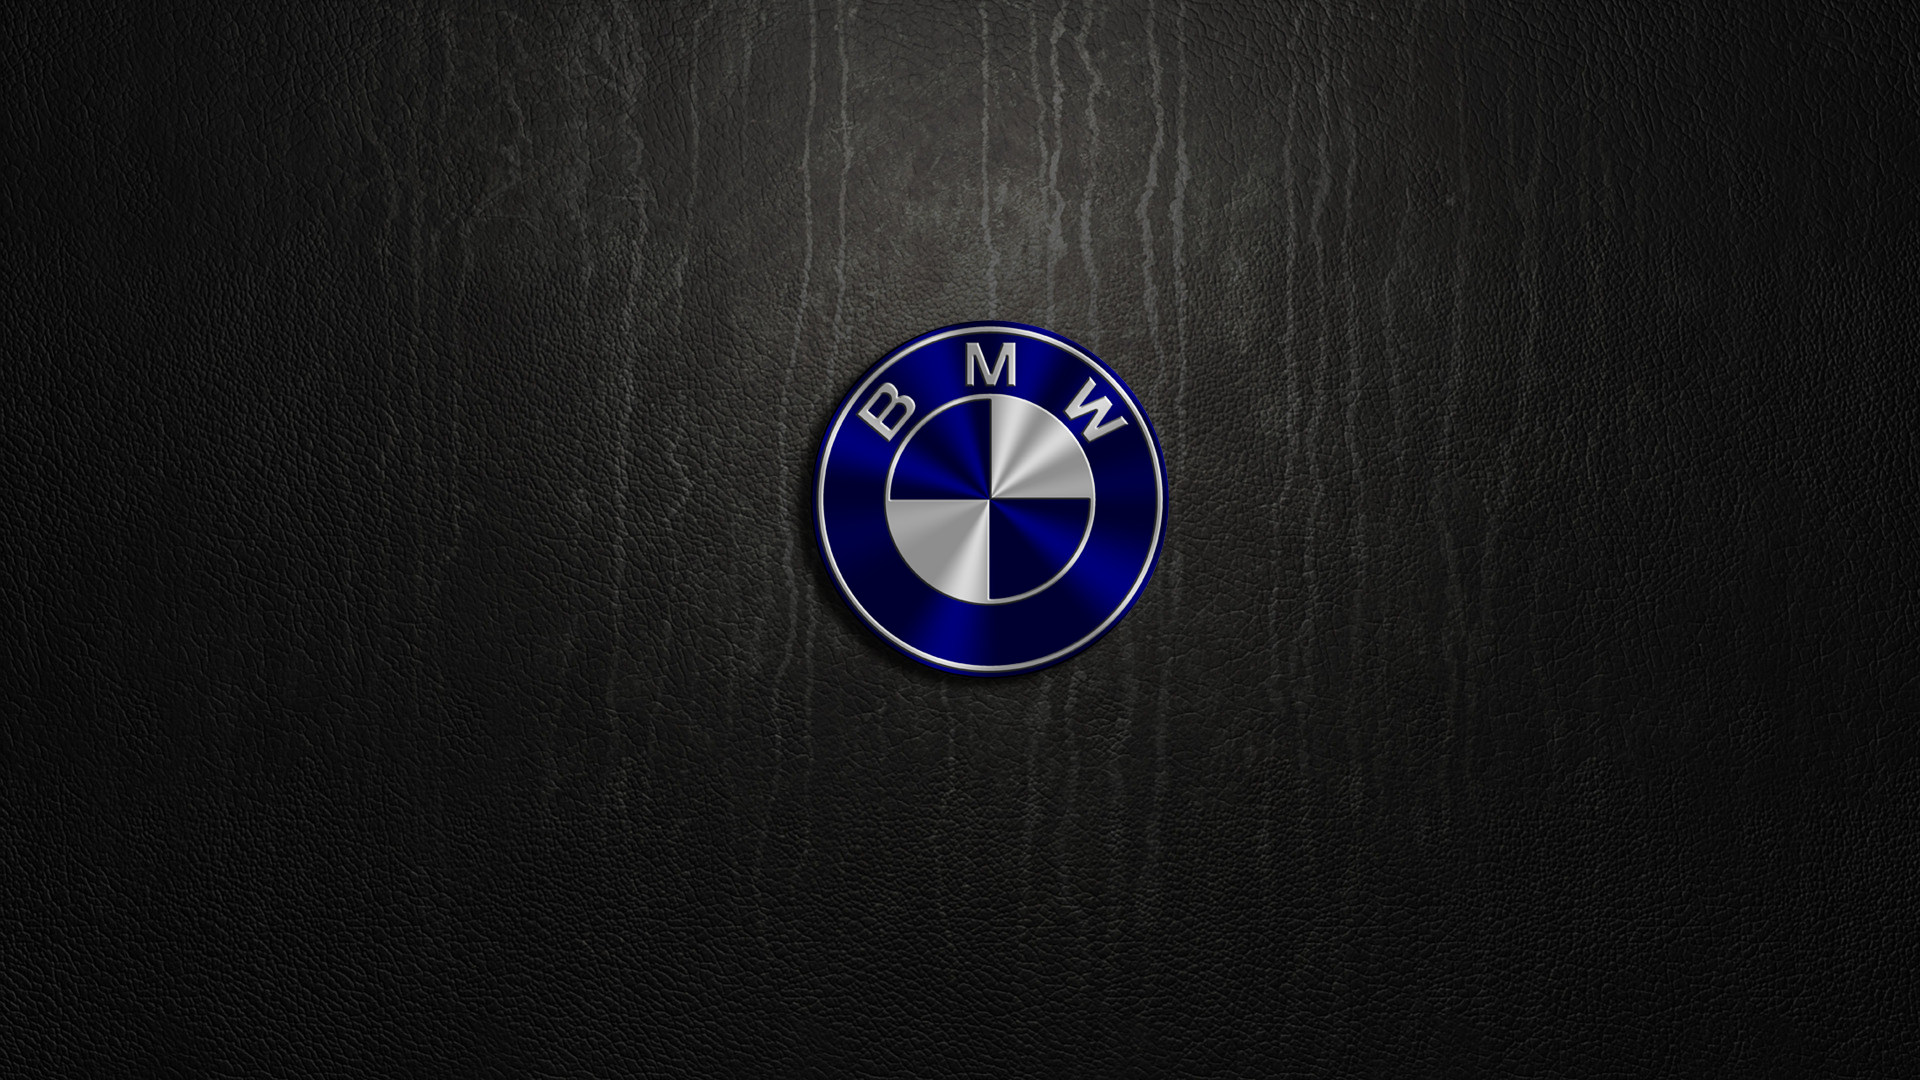 bmw logo wallpapers, pictures, images